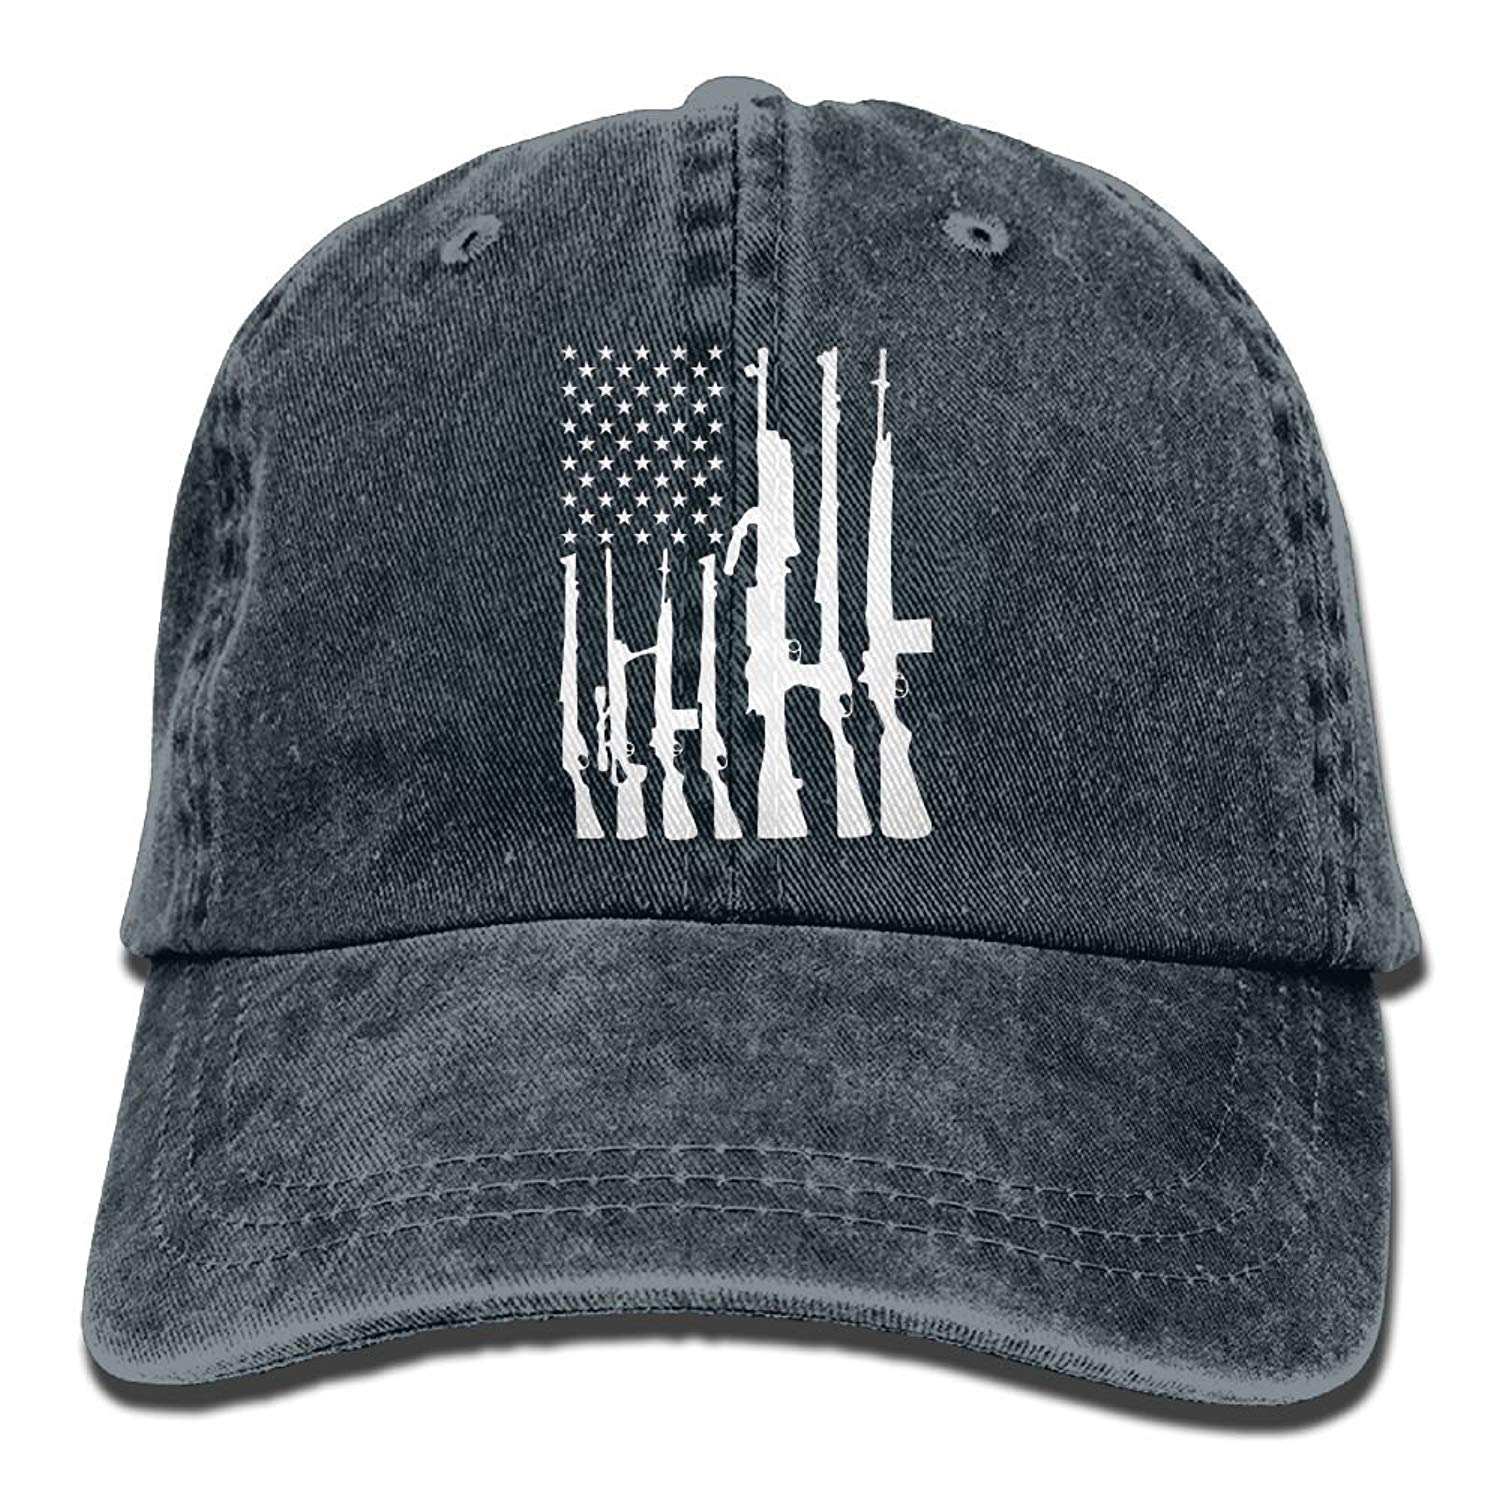 Enpengd Never Disarm Guns USA Flag Newest Men & Women Adjustable Cowboy Cotton Baseball Caps Navy